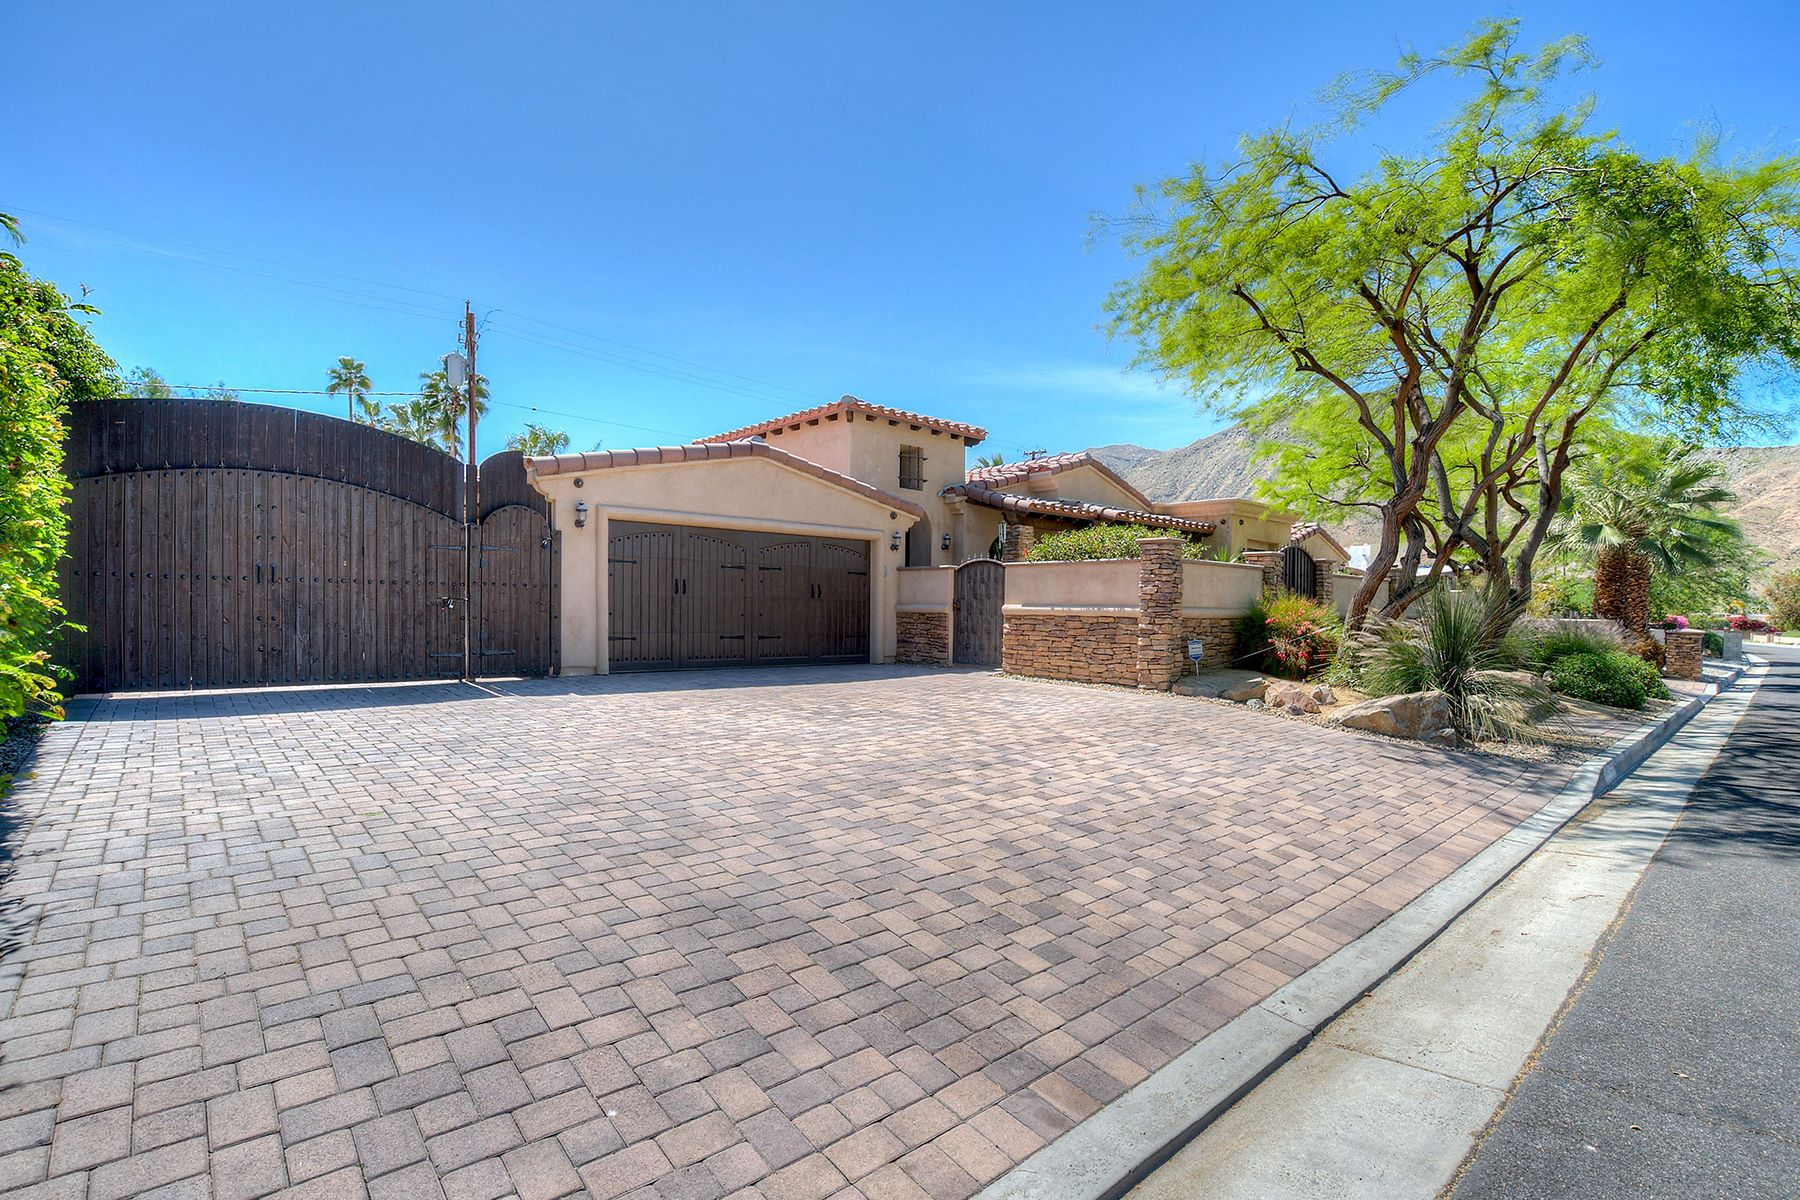 Single Family Home for Sale at 72775 Beavertail Street Palm Desert, California 92260 United States